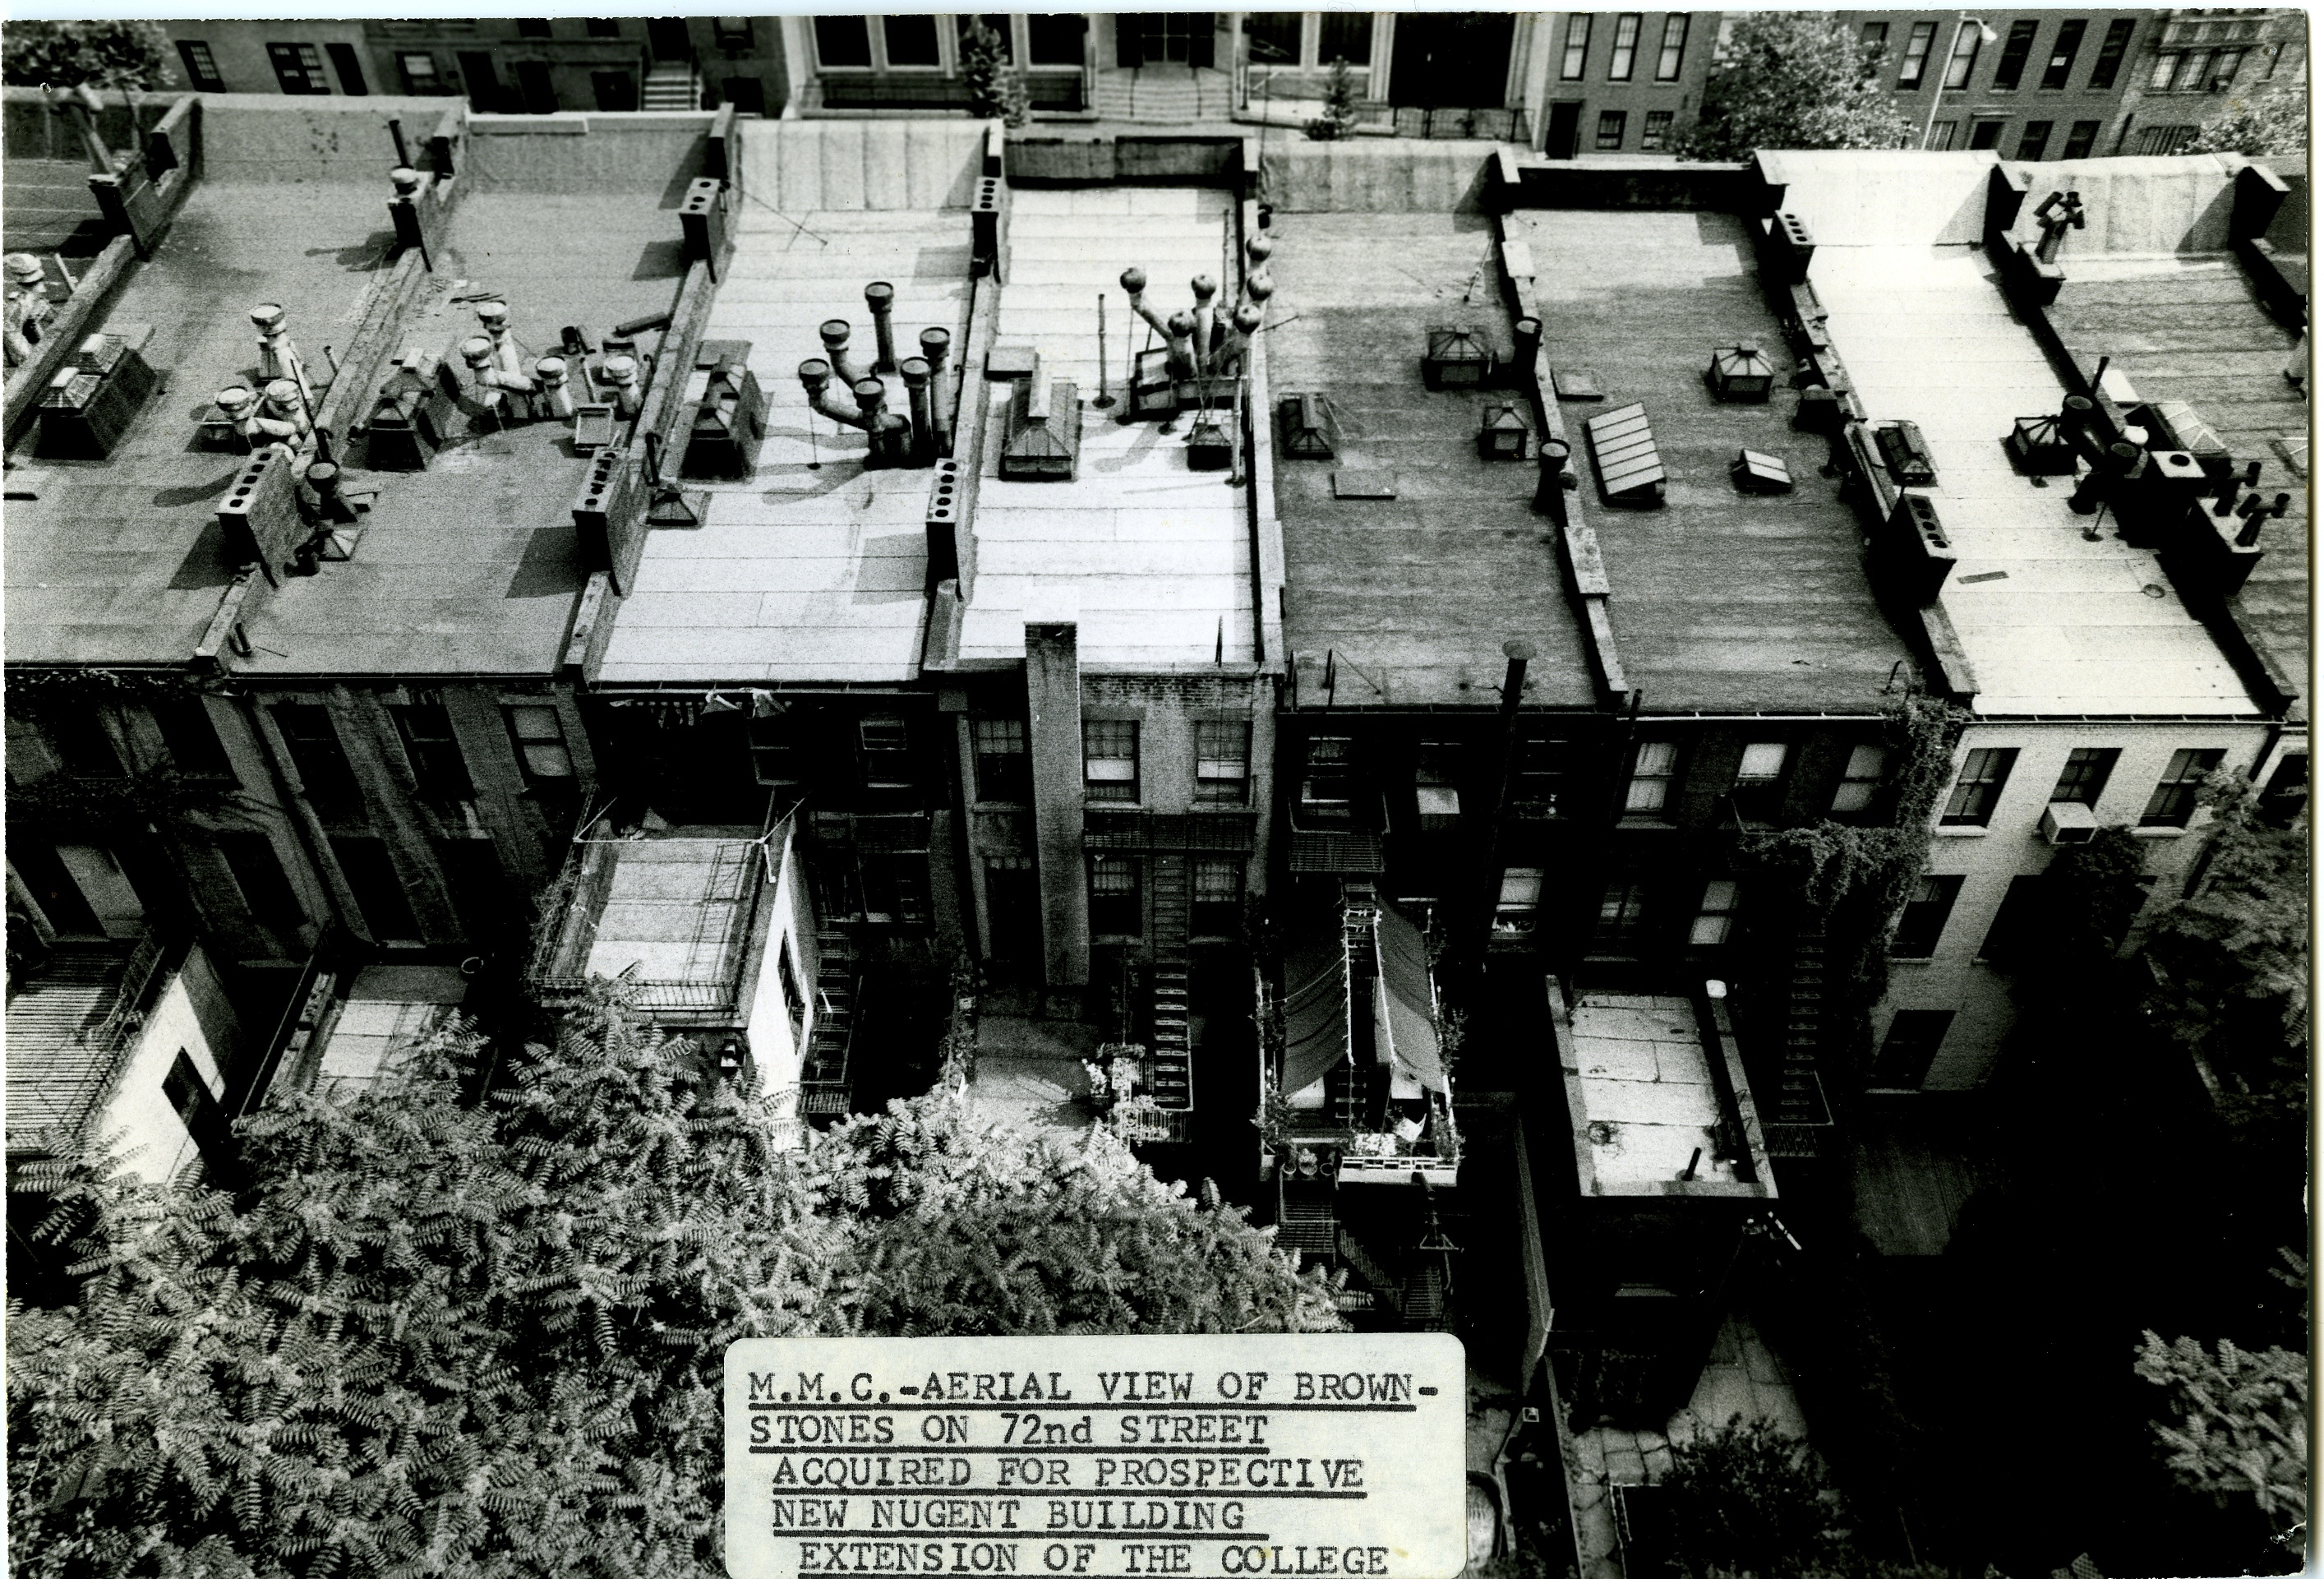 aerial view of townhouses that were along 72nd Street where MMC's Nugent Building was later built.